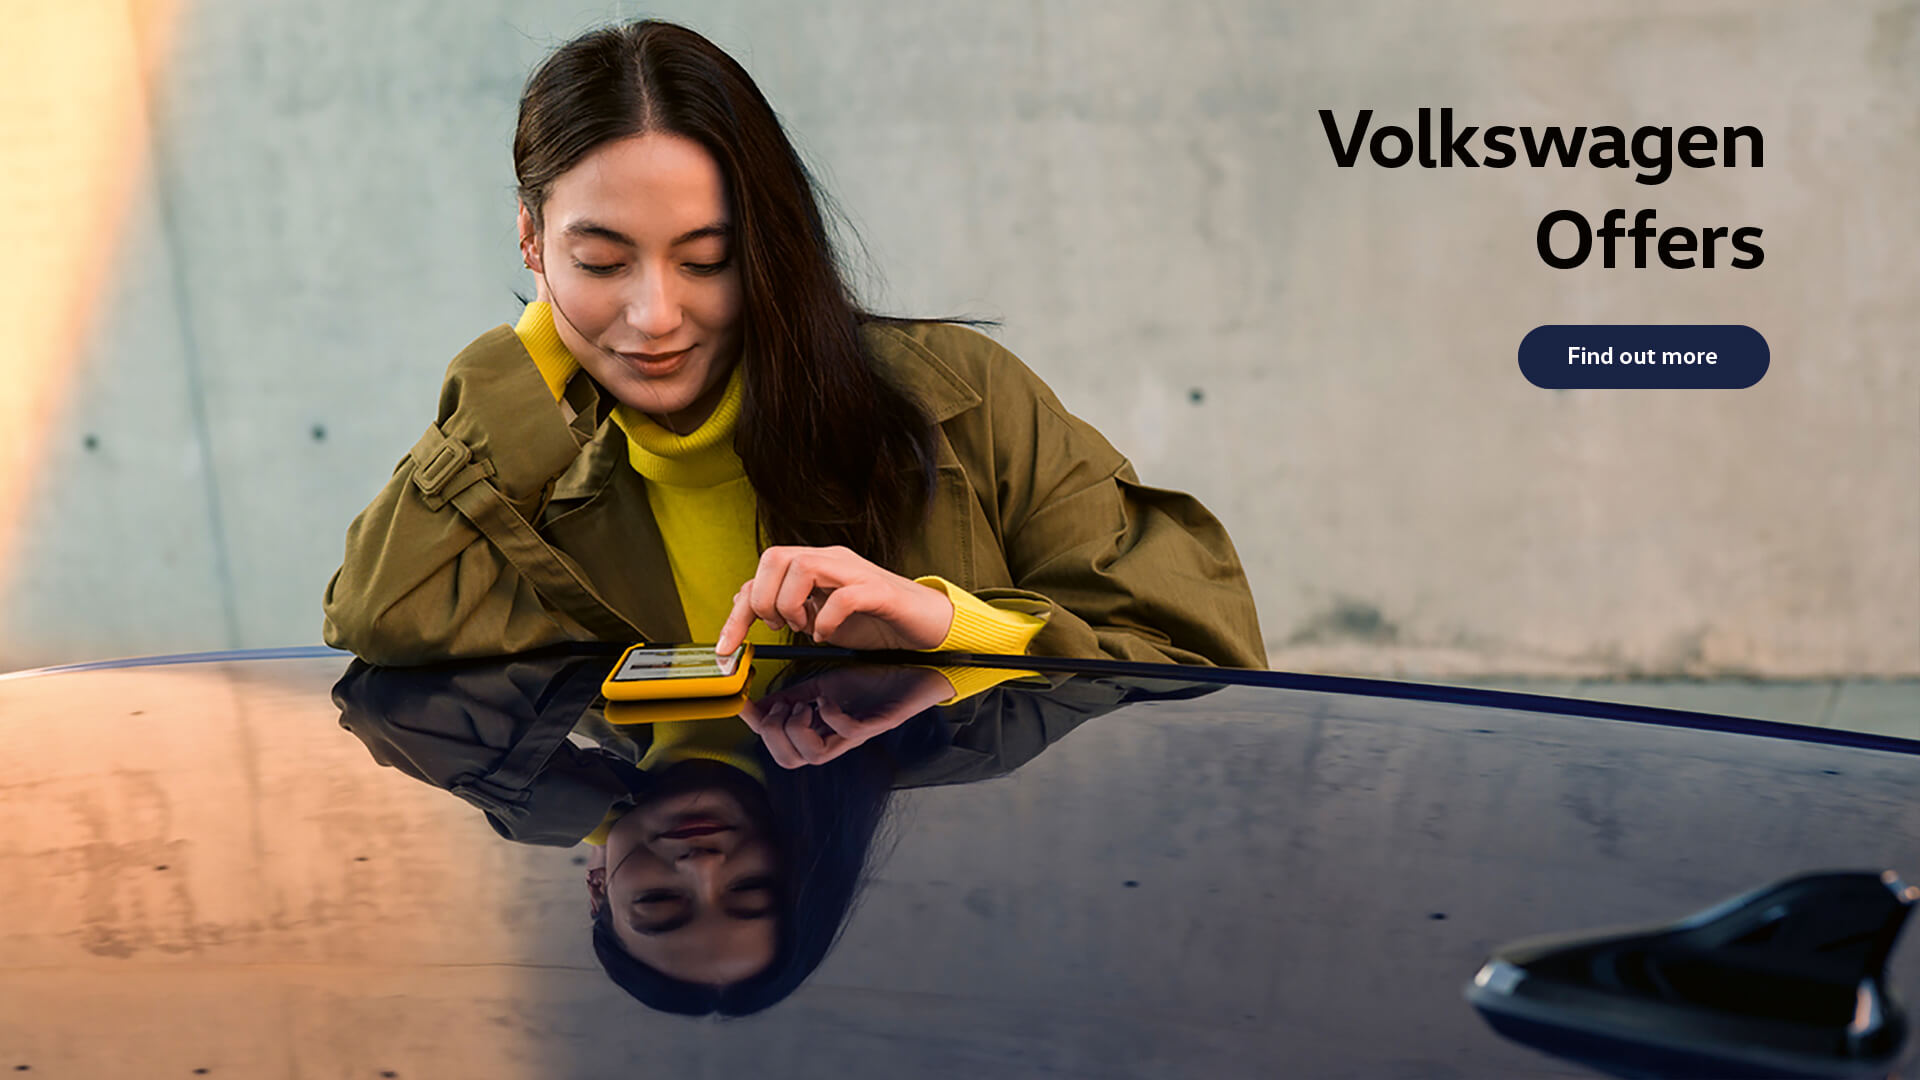 Volkswagen Offers - Find out more